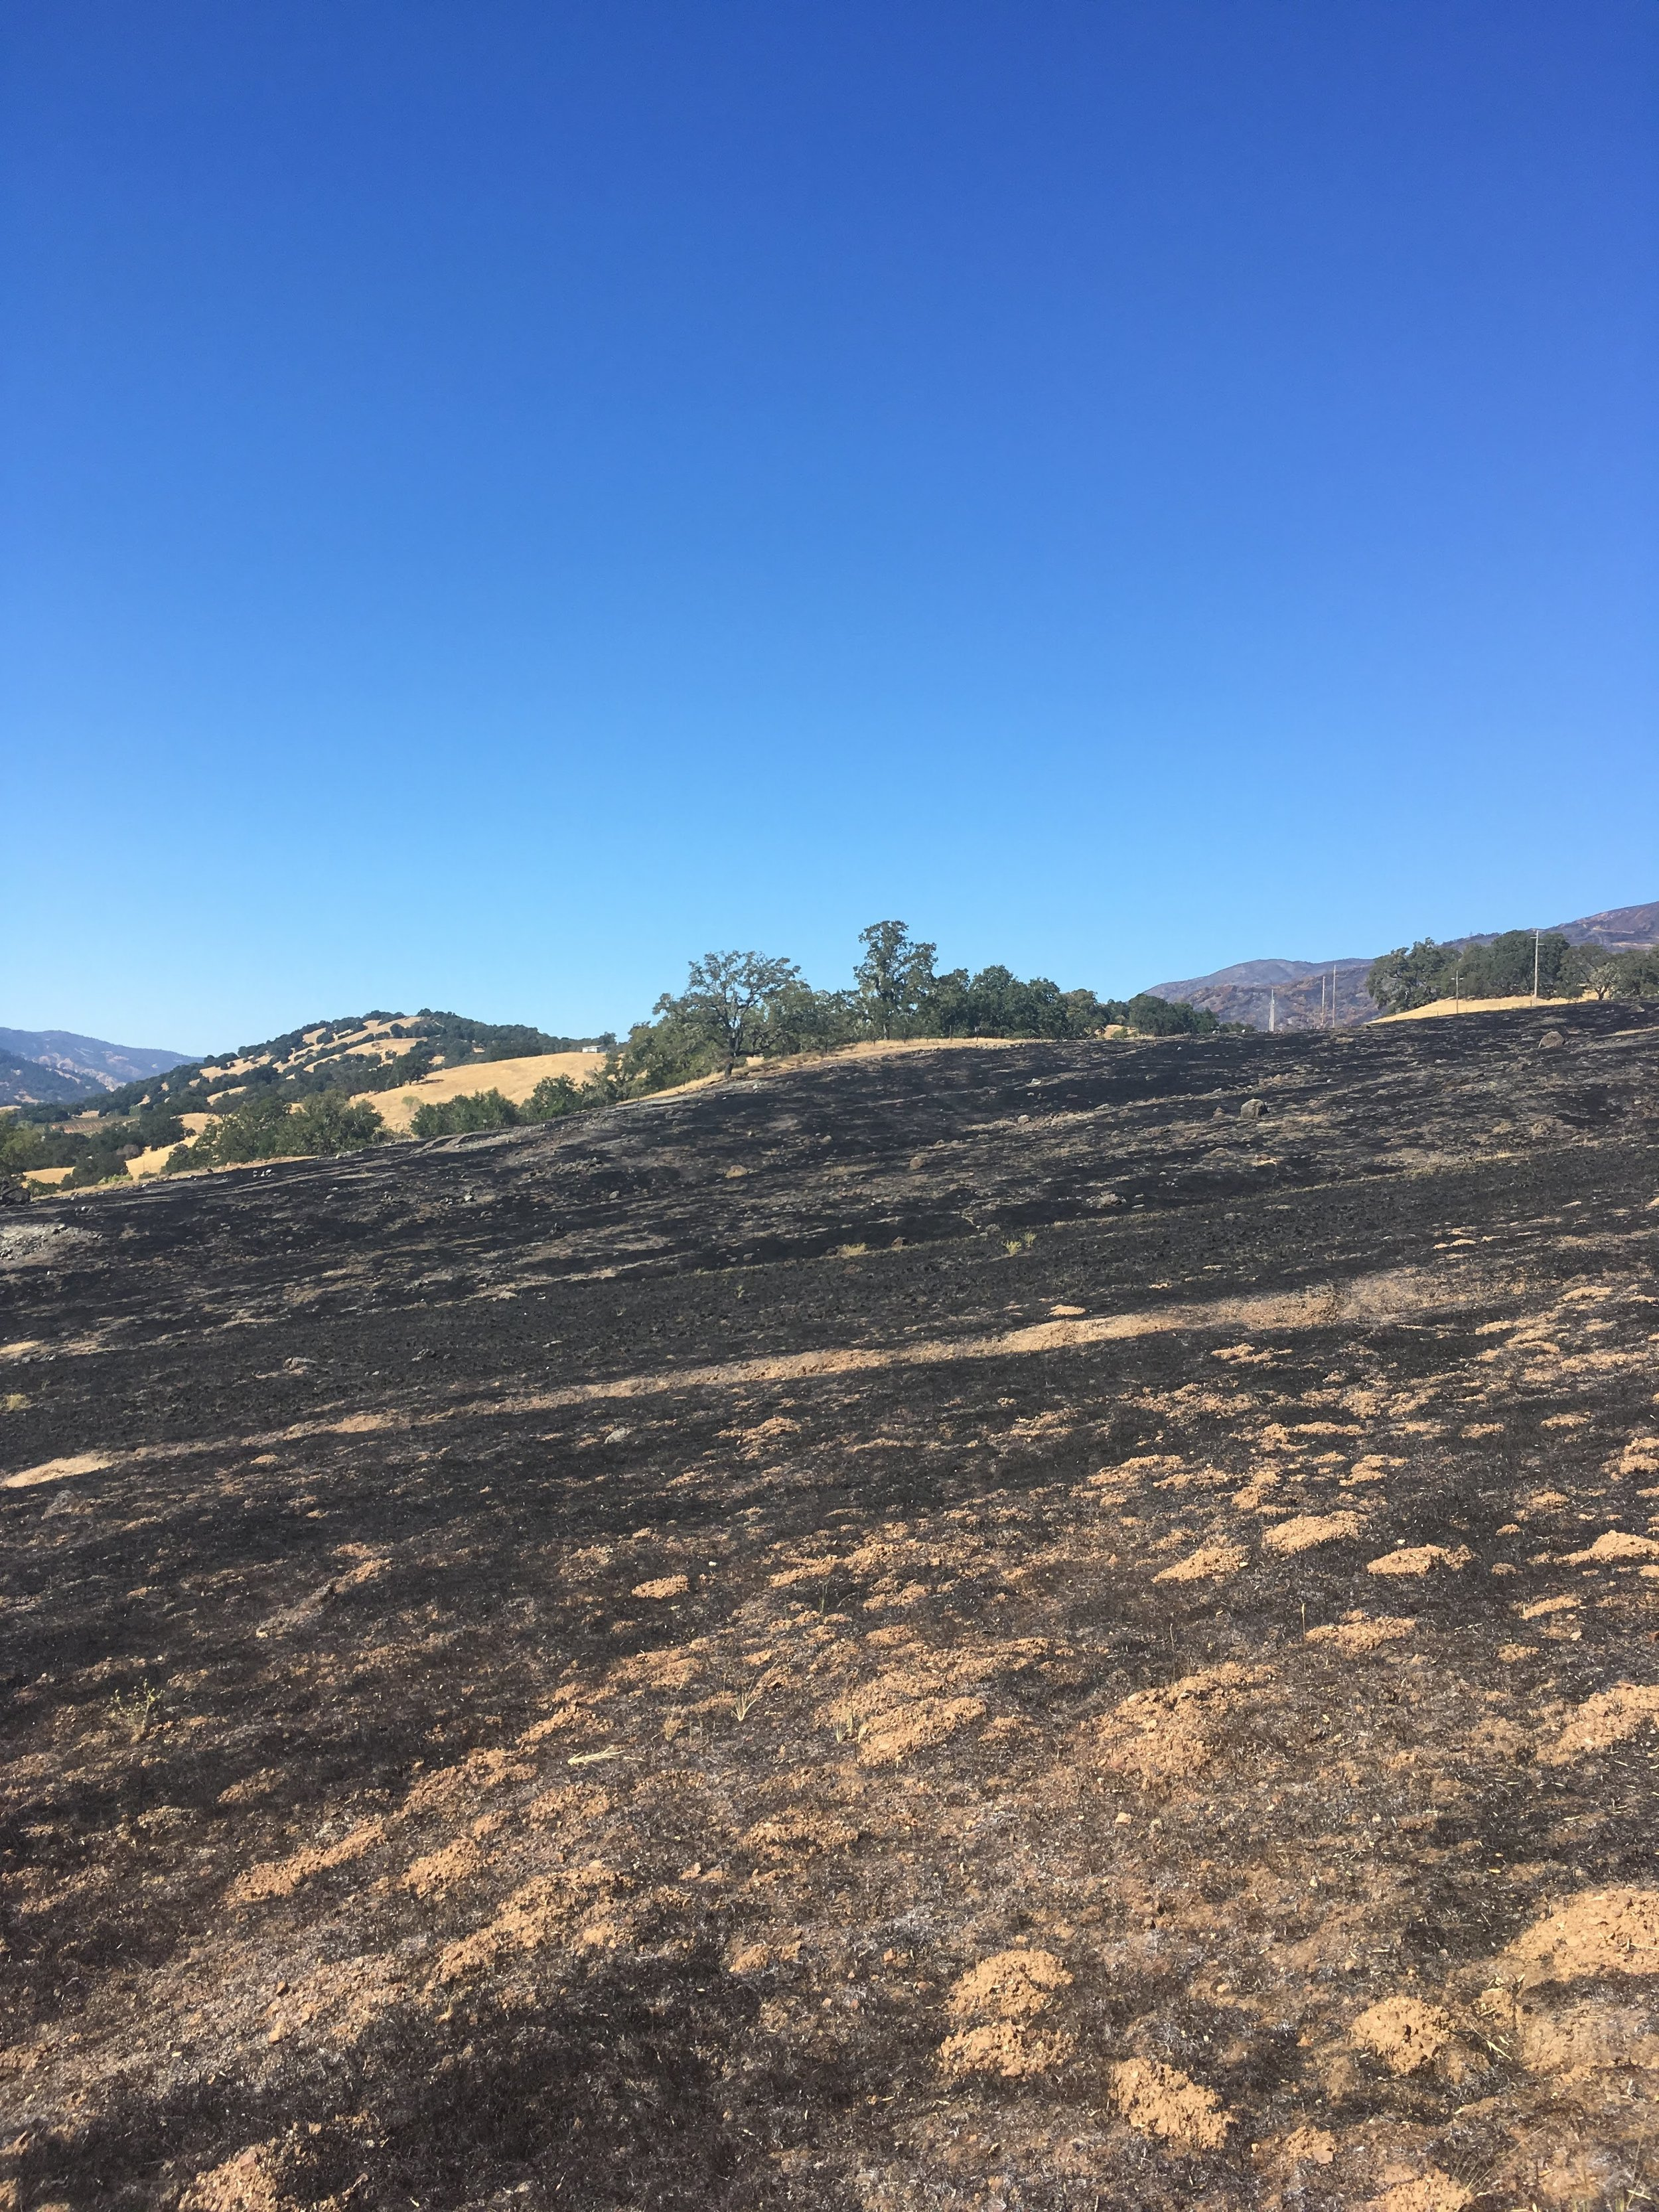 September 2018, Fire scars in a northern California grassland after the Mendocino Complex Fire. Restoration ecologists are studying how more frequent and more high severity fire impact the recovery of ecosystems.